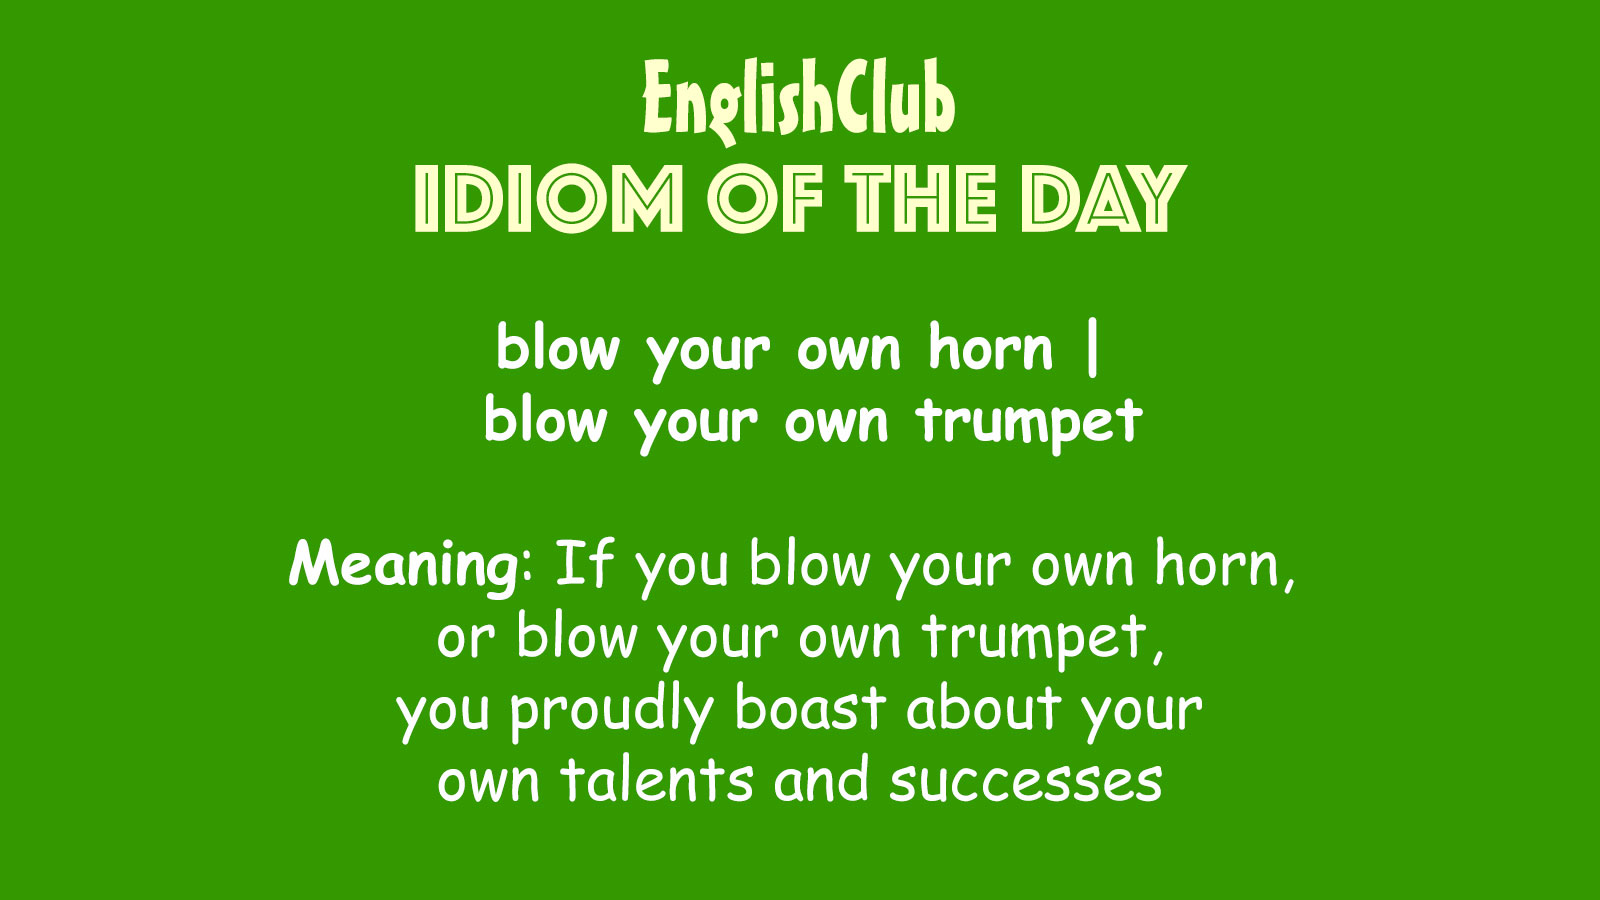 blow your own horn | blow your own trumpet